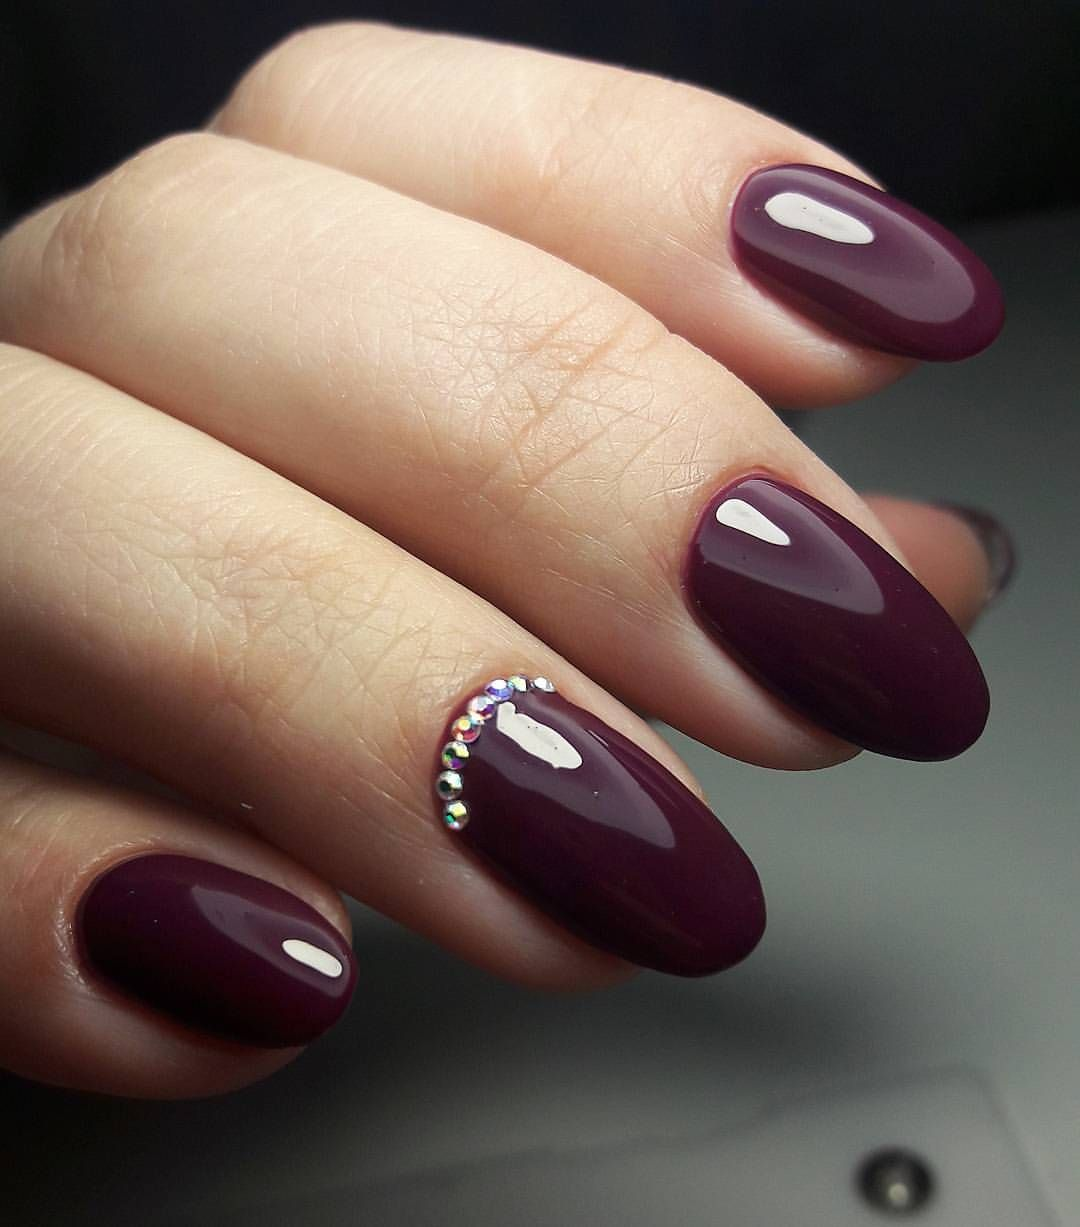 Pin by monii hernandez on nailsuc pinterest bling change and shapes